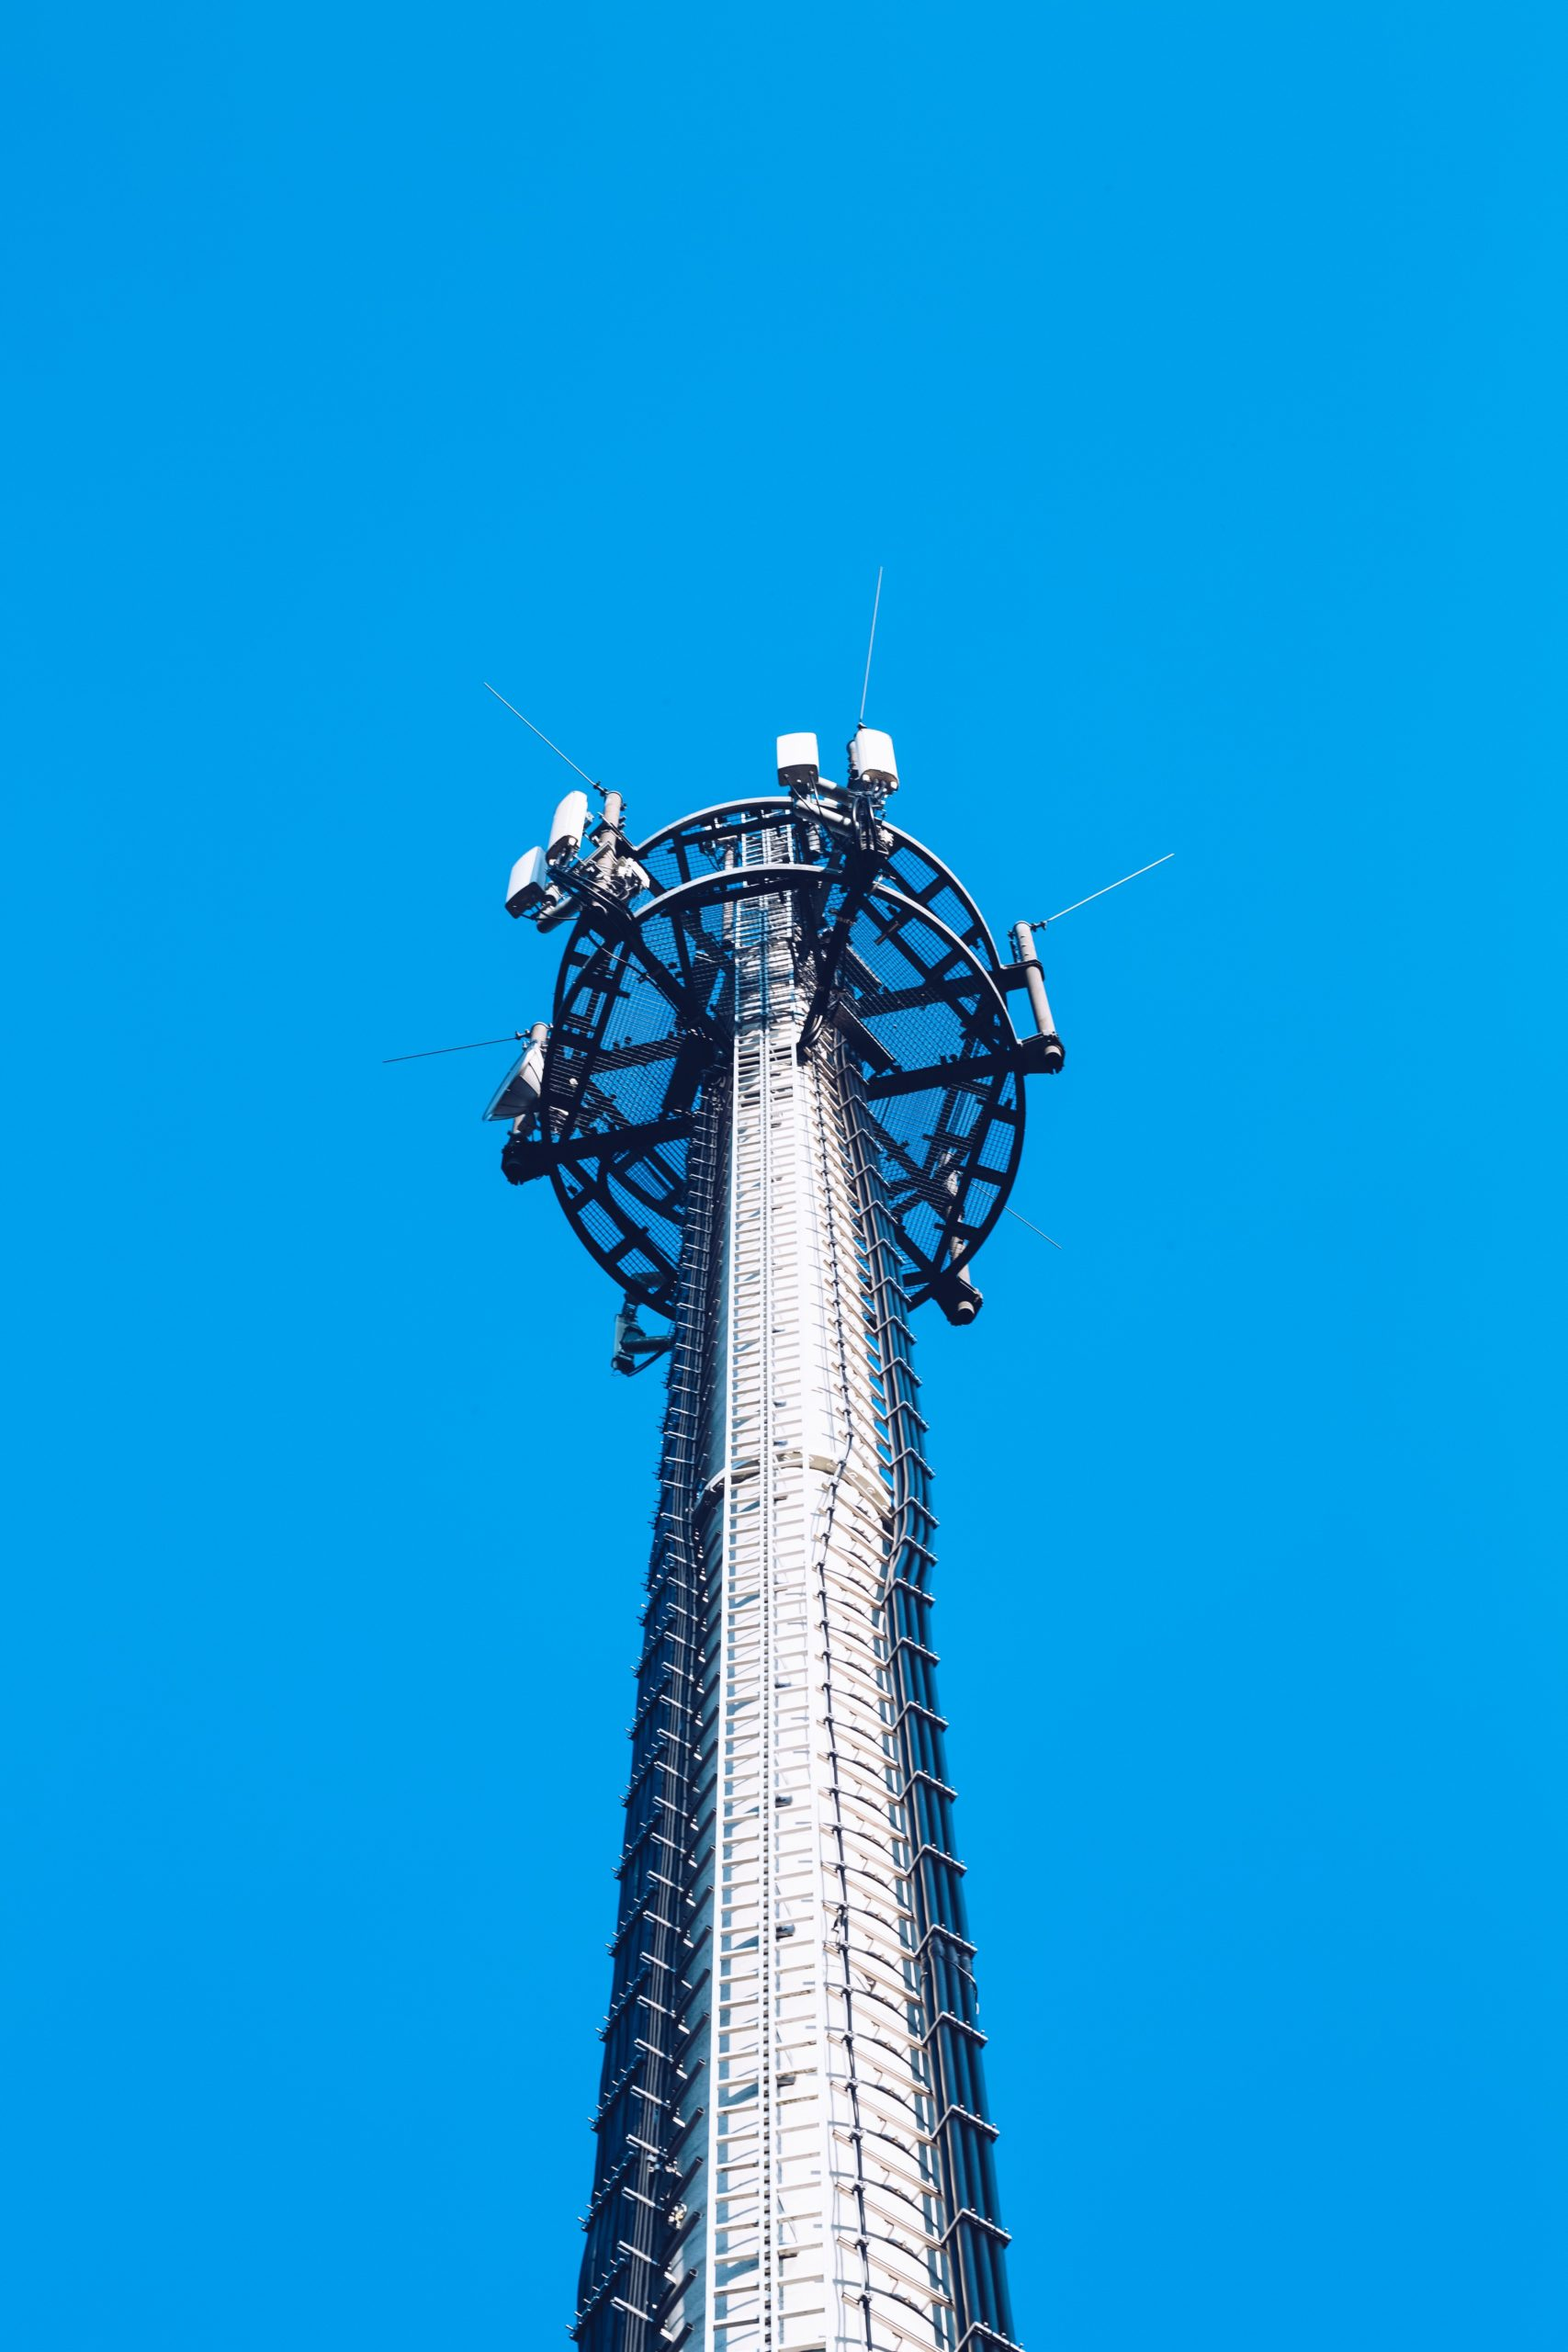 5G, 5GE, & 5GHz: Understand The Difference